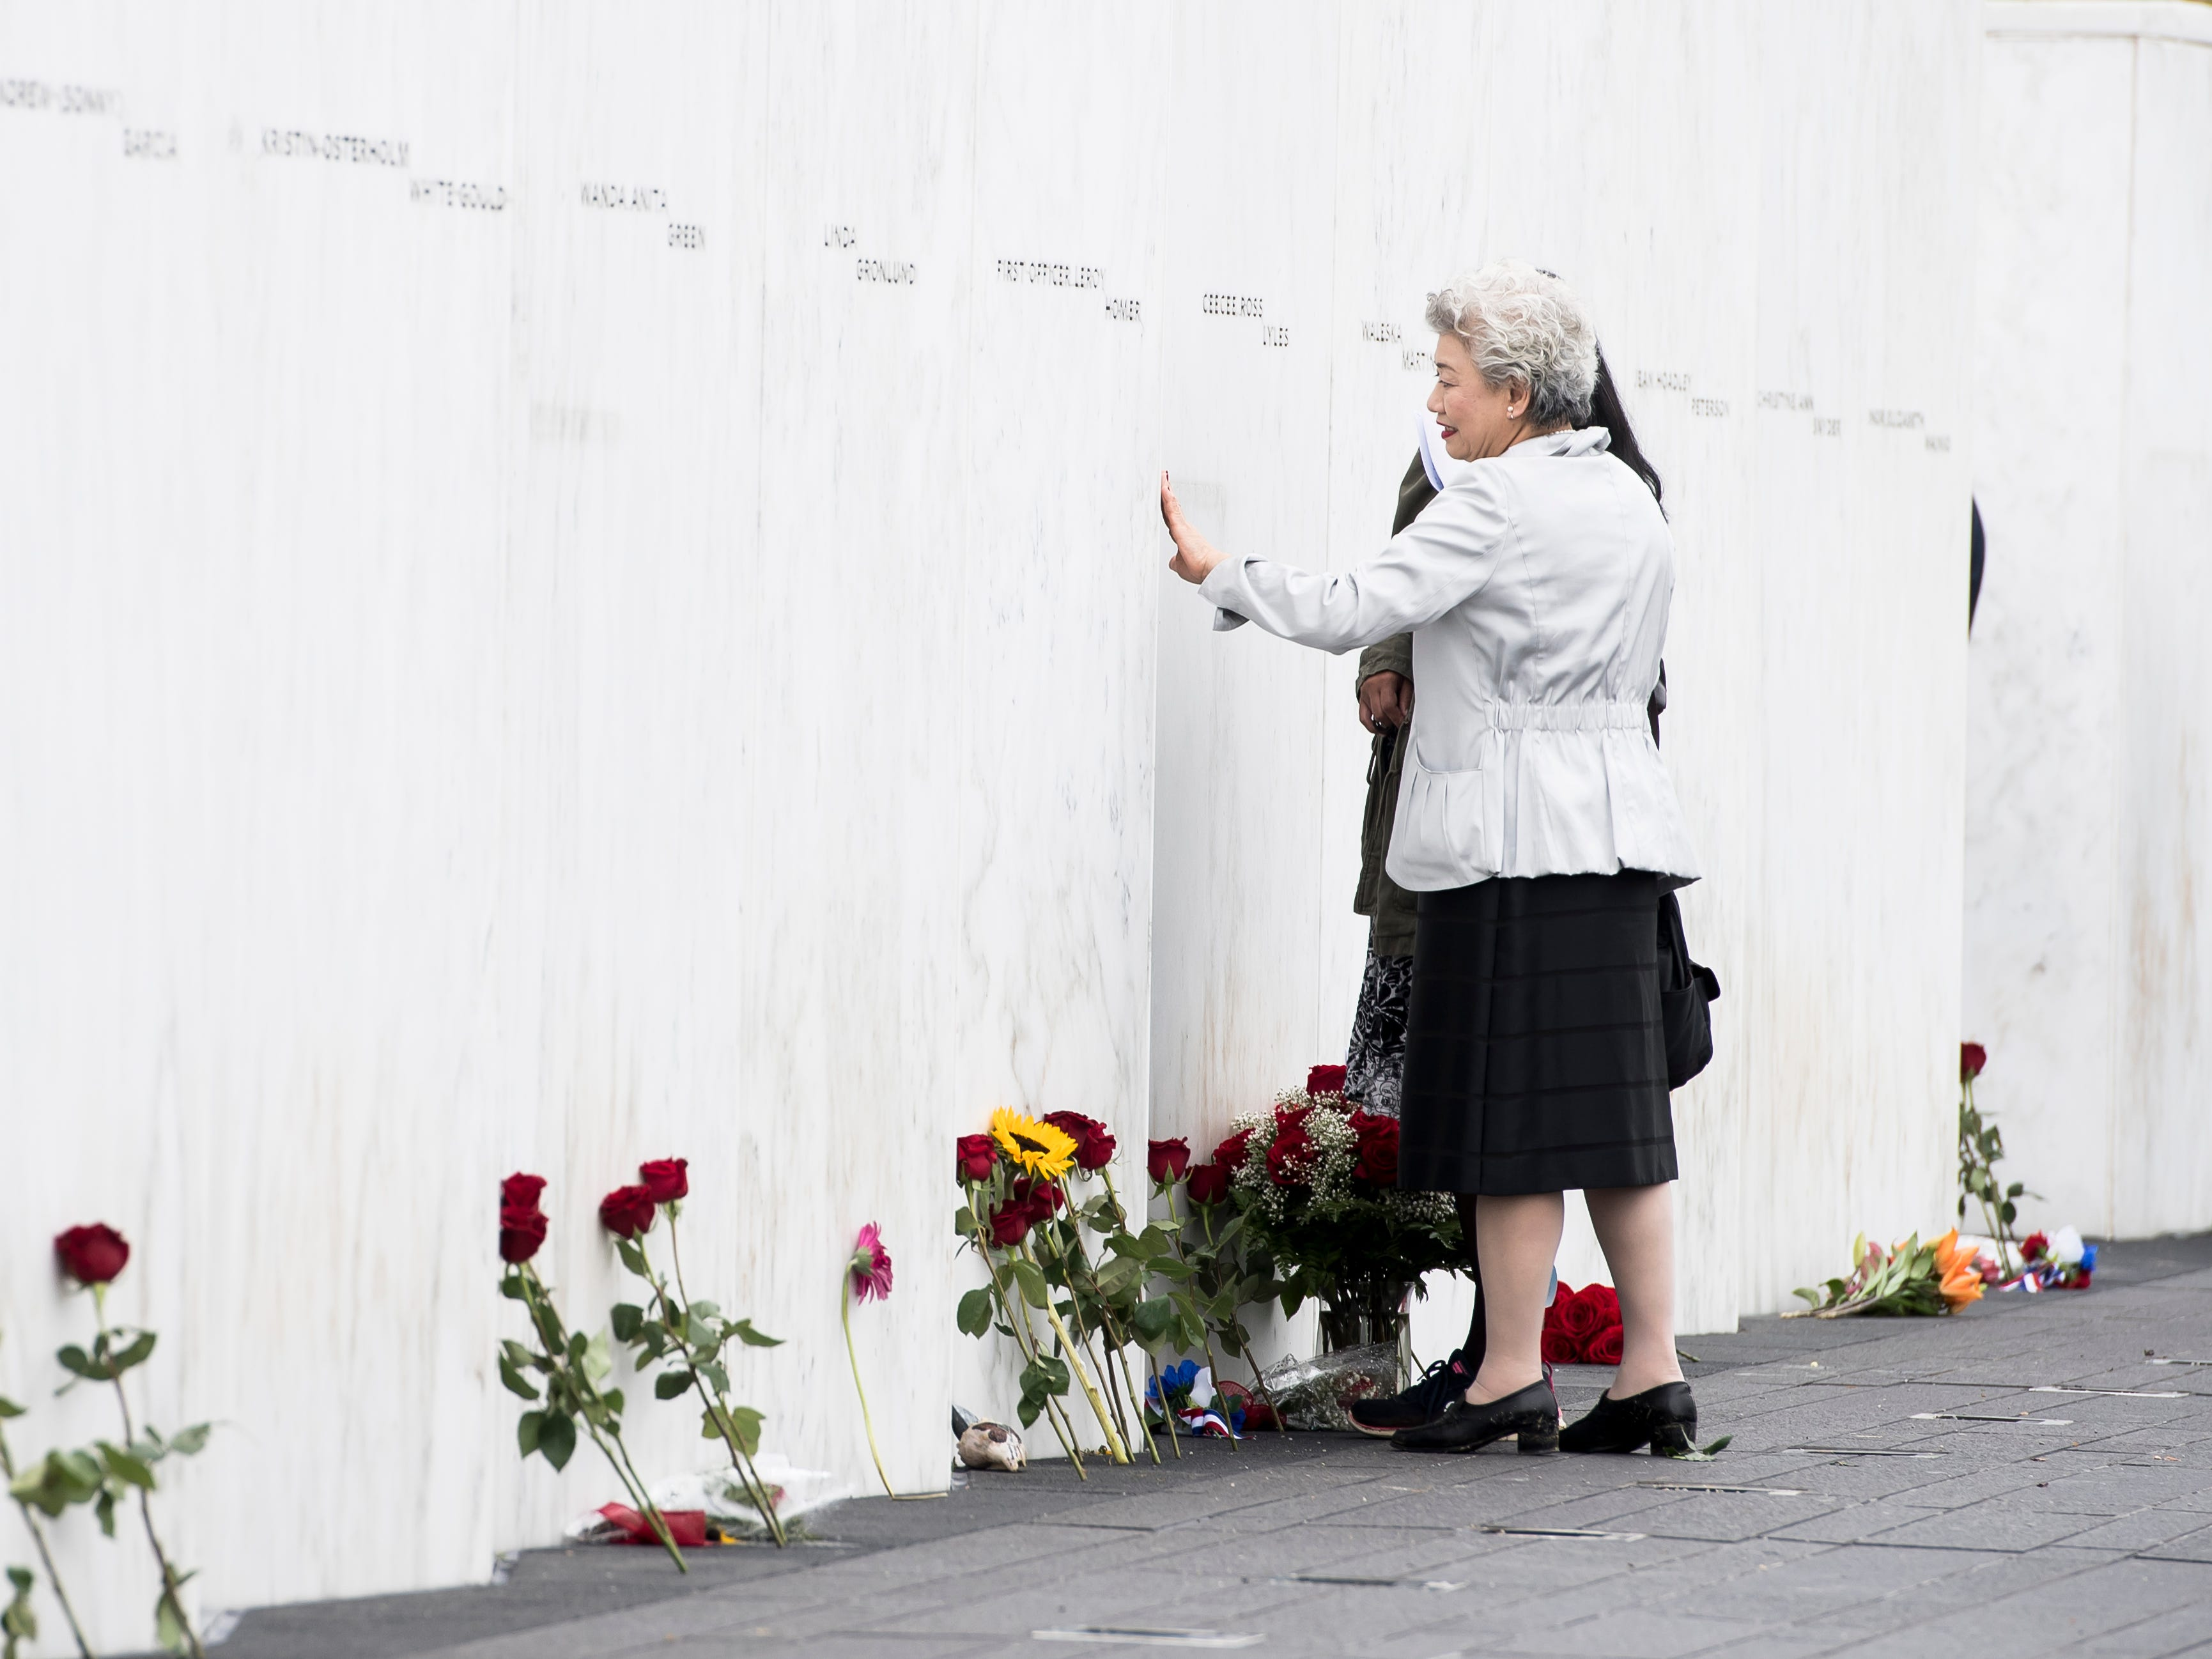 Yachiyo Kuge, mother of Flight 93 victim Toshiya Kuge, touches his name on the Wall of Names at the Flight 93 National Memorial in Shanksville, Pa., on September 11, 2018.